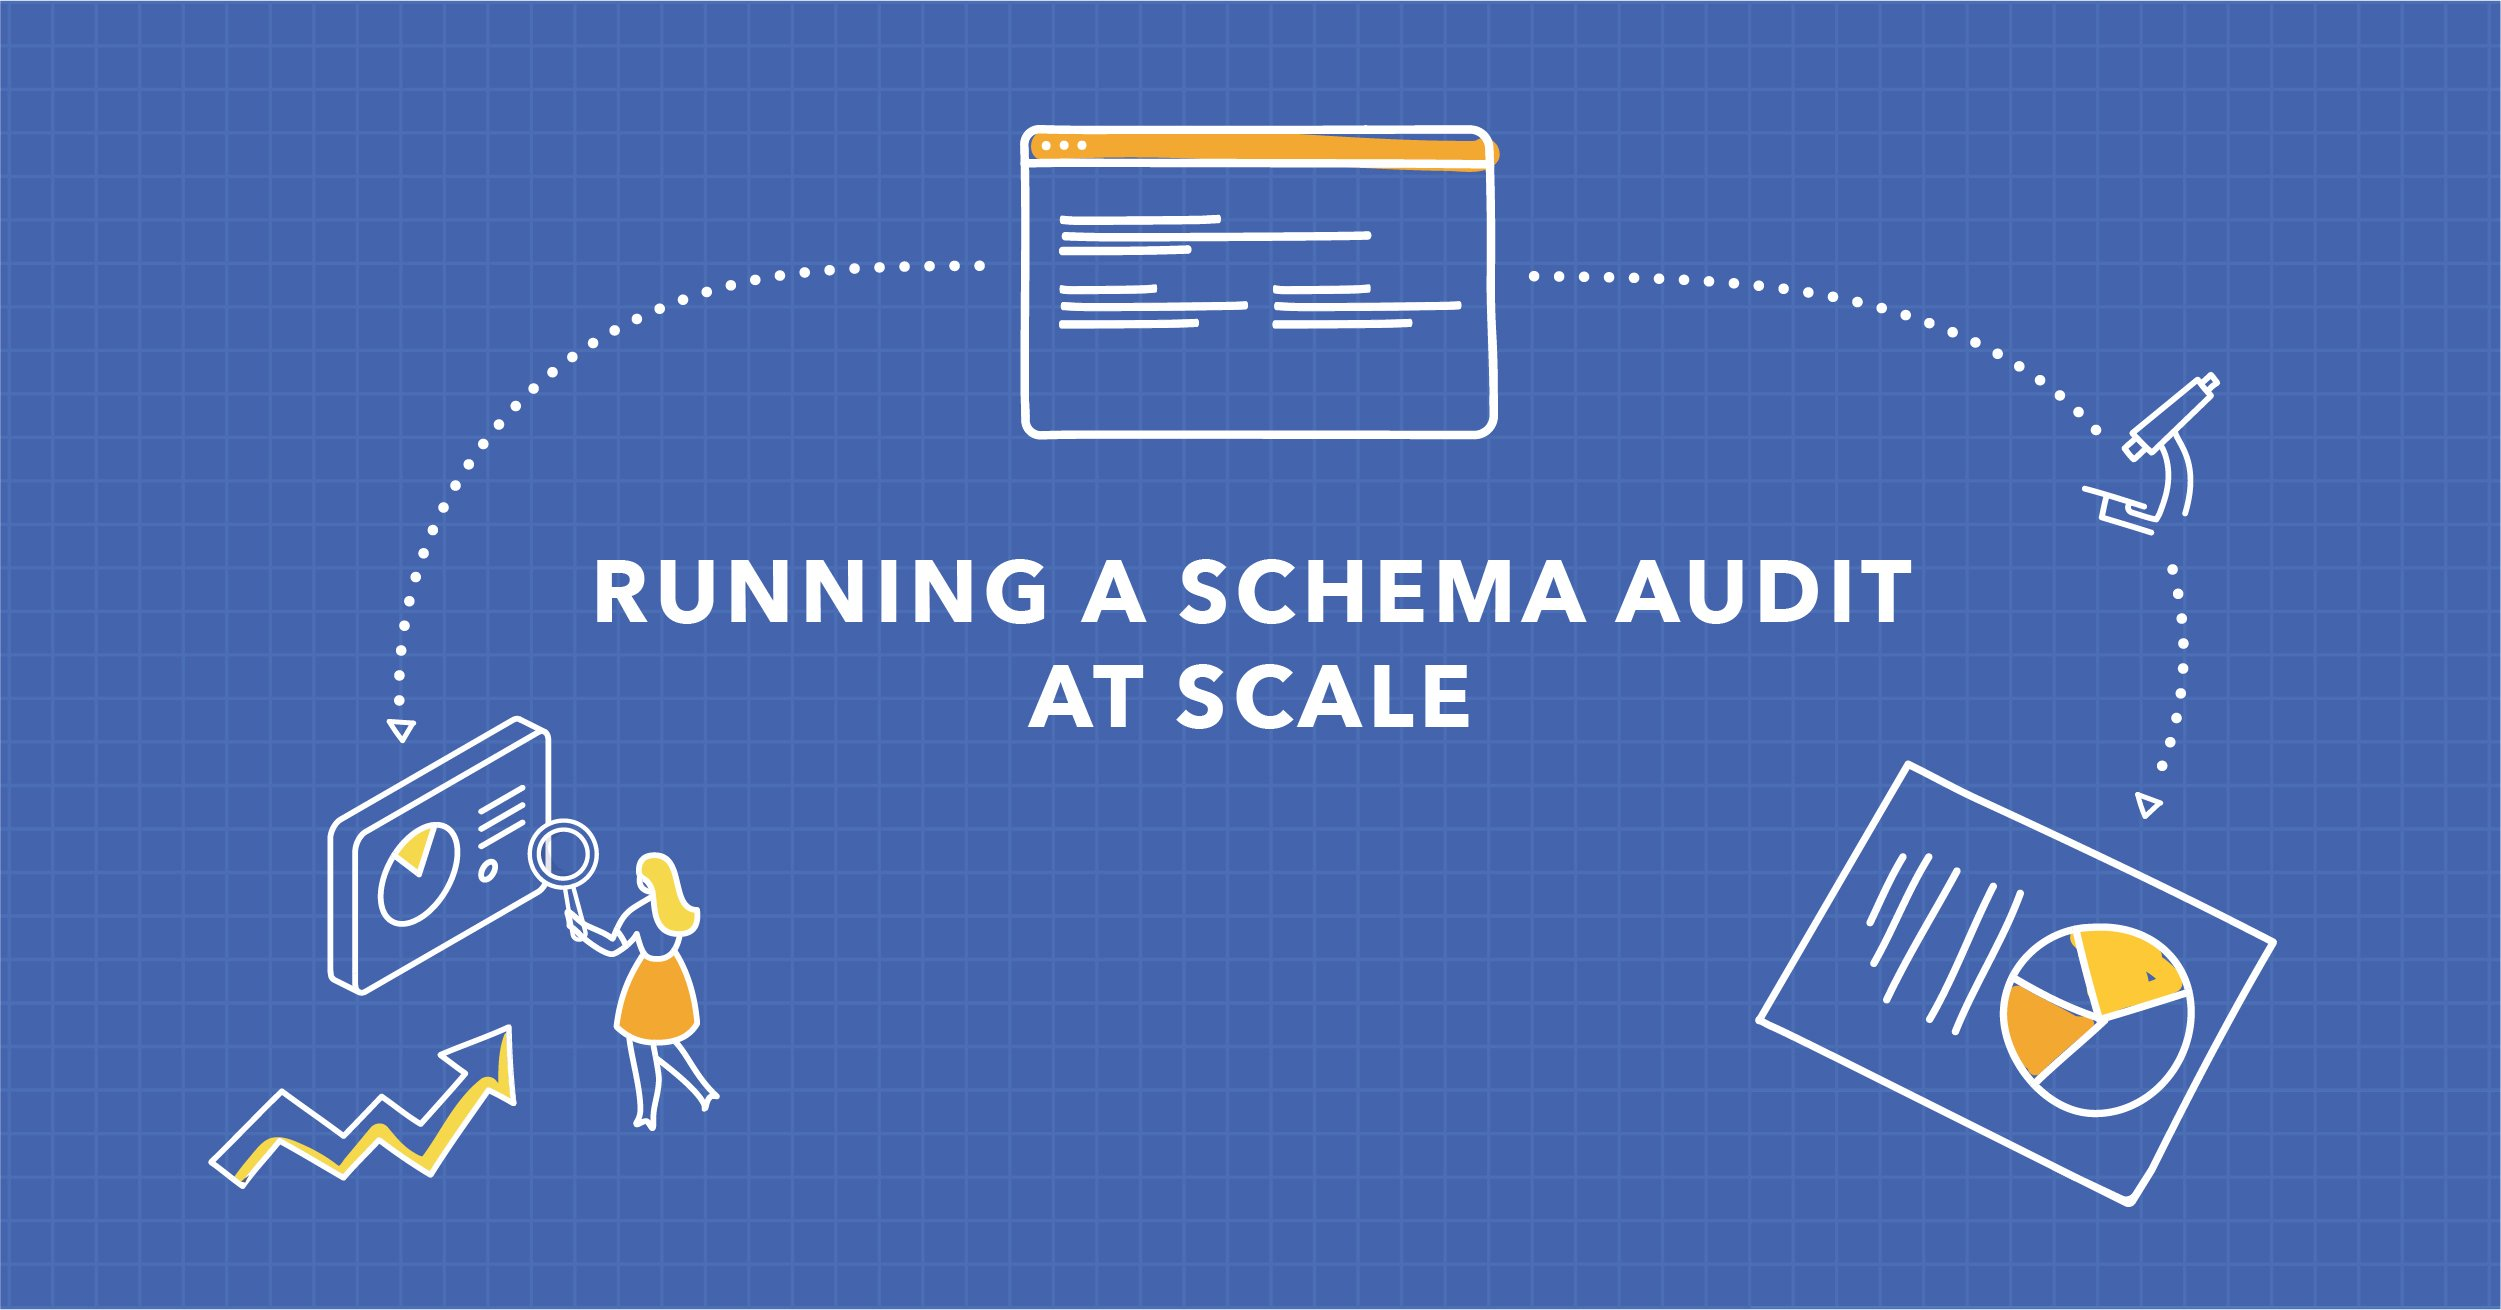 Auditing Your Schema: Check Structured Data at Scale to Ensure Its Implementation